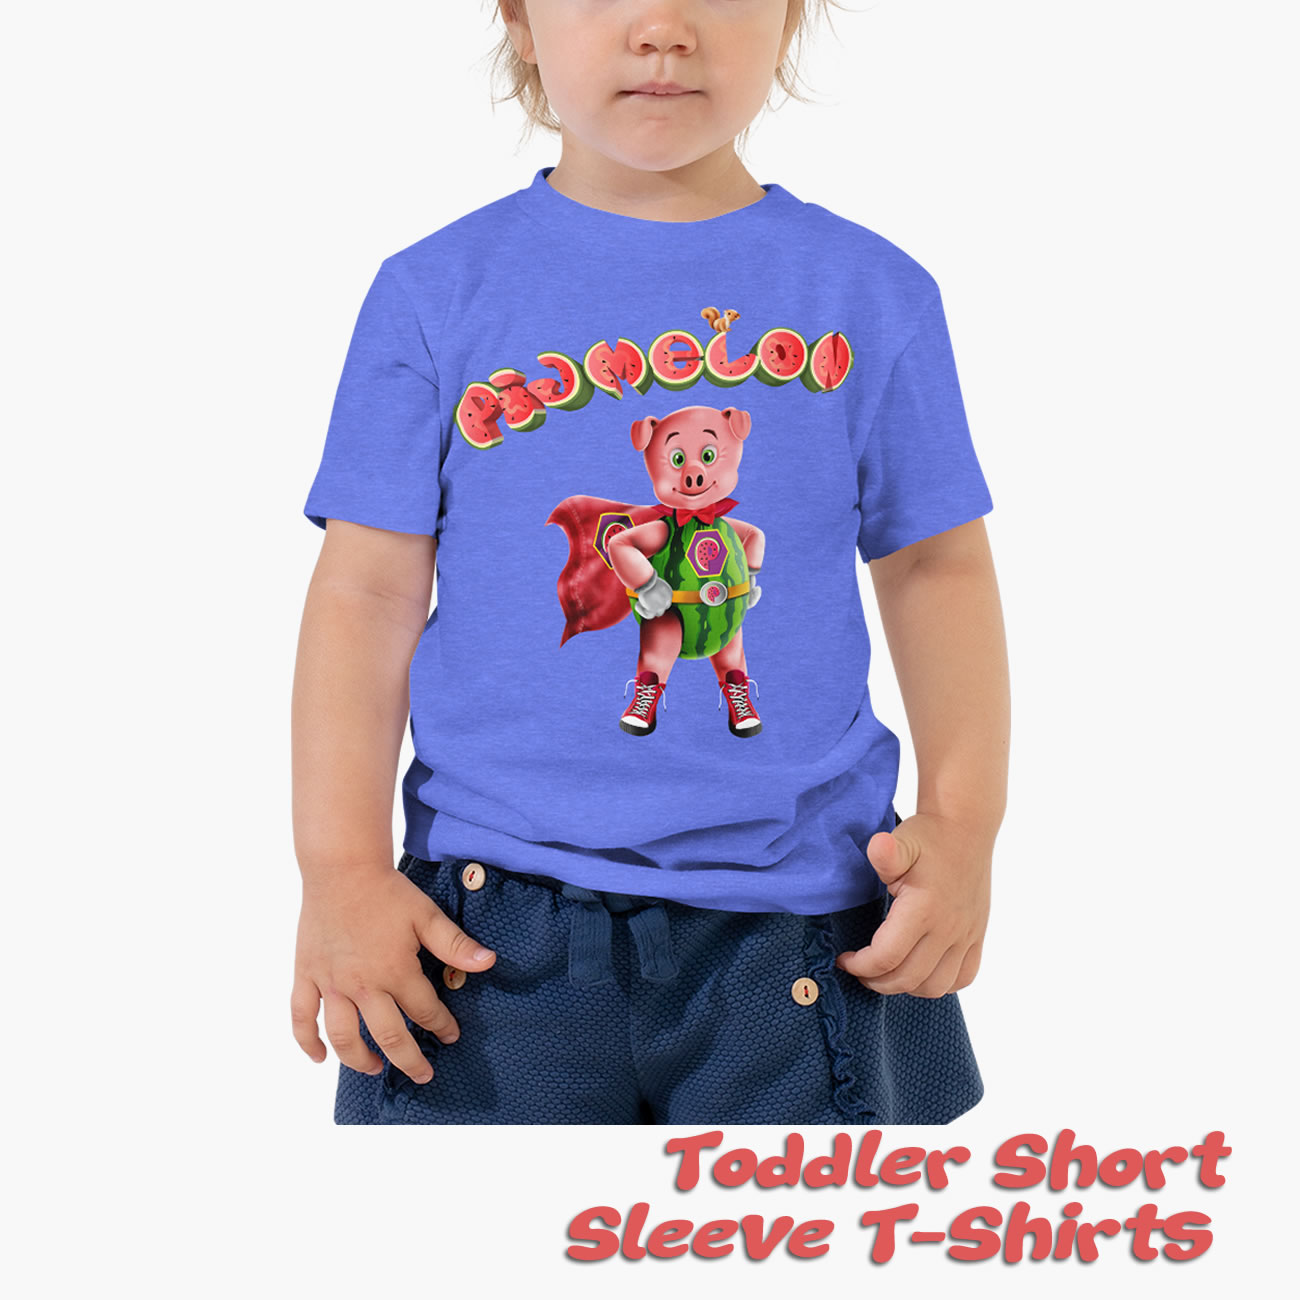 Pigmelon Toddler Short Sleeve T-shirts